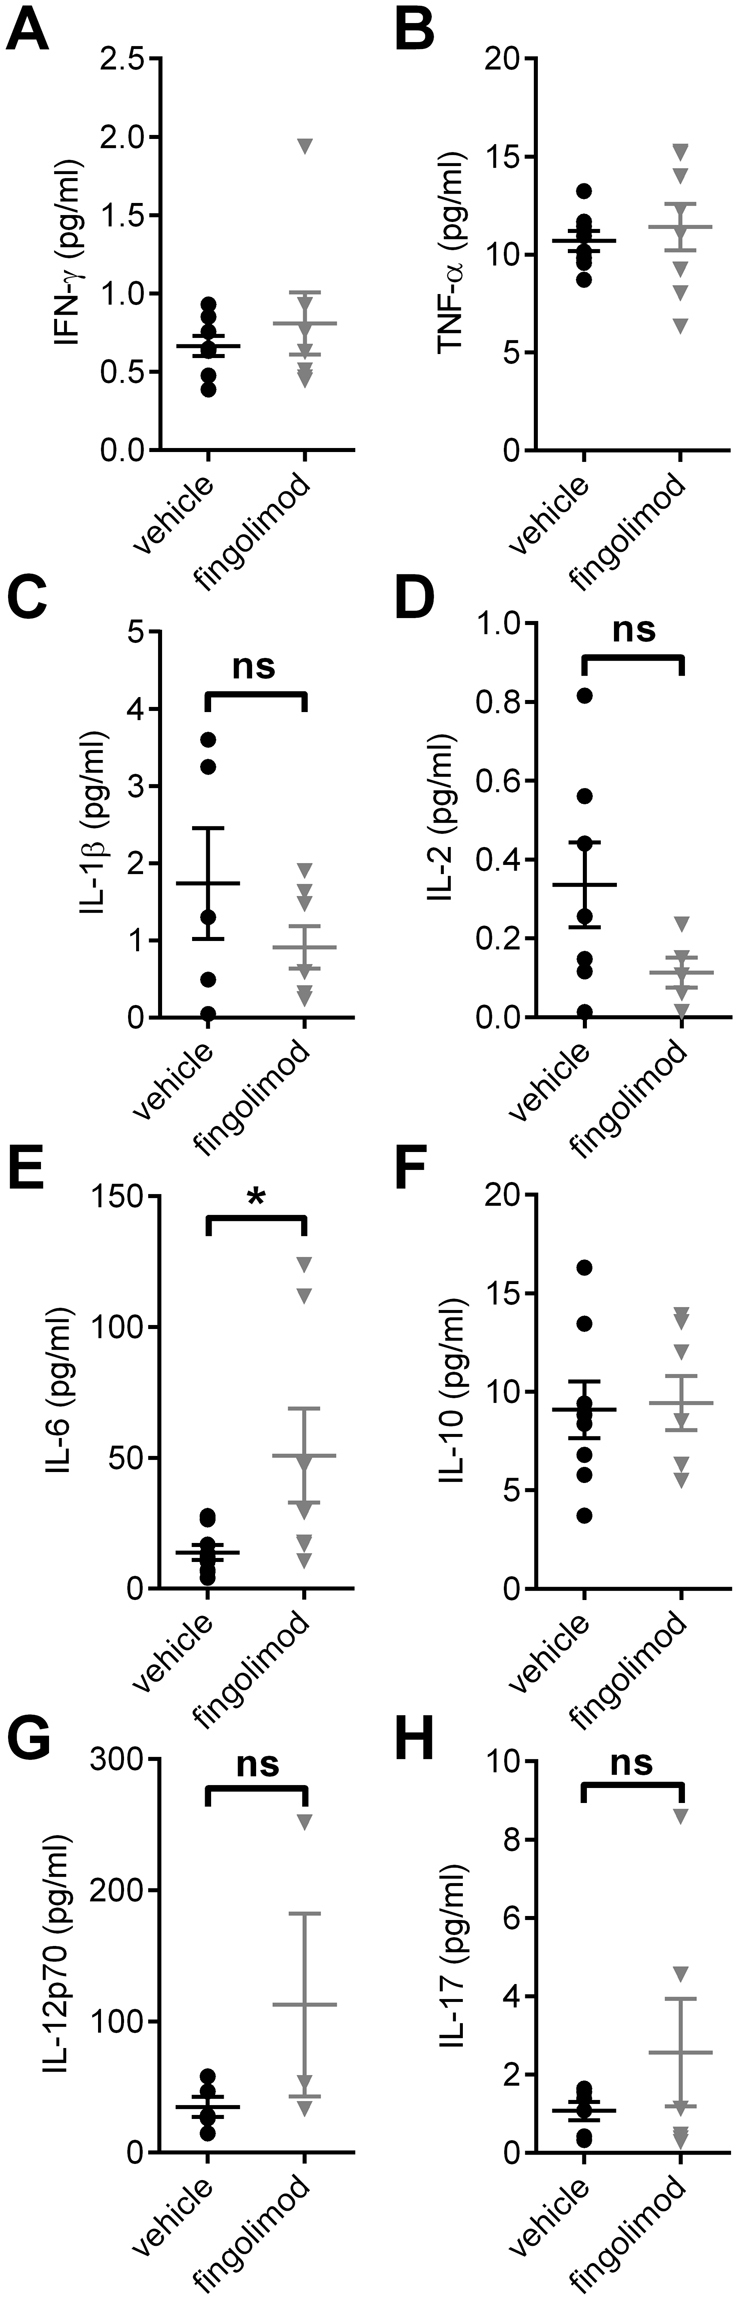 Influence of fingolimod on serum cytokine expression. Serum samples were taken after an eight-week treatment period with fingolimod or vehicle. No differences in cytokine levels were observed for ( A ) Interferon-γ (IFN-γ), ( B ) Tumor necrosis factor-α (TNF-α), ( C ) Interleukin (IL)-1b (IL-1b), ( D ) IL-2. ( E ) Fingolimod treated mice showed elevated levels of IL-6 compared to vehicle treated control animals, while ( F ) IL-10, ( G ) IL-12p70 and ( H ) IL-17 were not different between treatment groups. Statistical analysis: ( A , C , D , E , G , H ) Mann-Whitney-U test, ( B , F ) unpaired t-test, group sizes: n = 5–9 (vehicle), n = 3–8 (fingolimod). *p ≤ 0.05, ns: not significant.